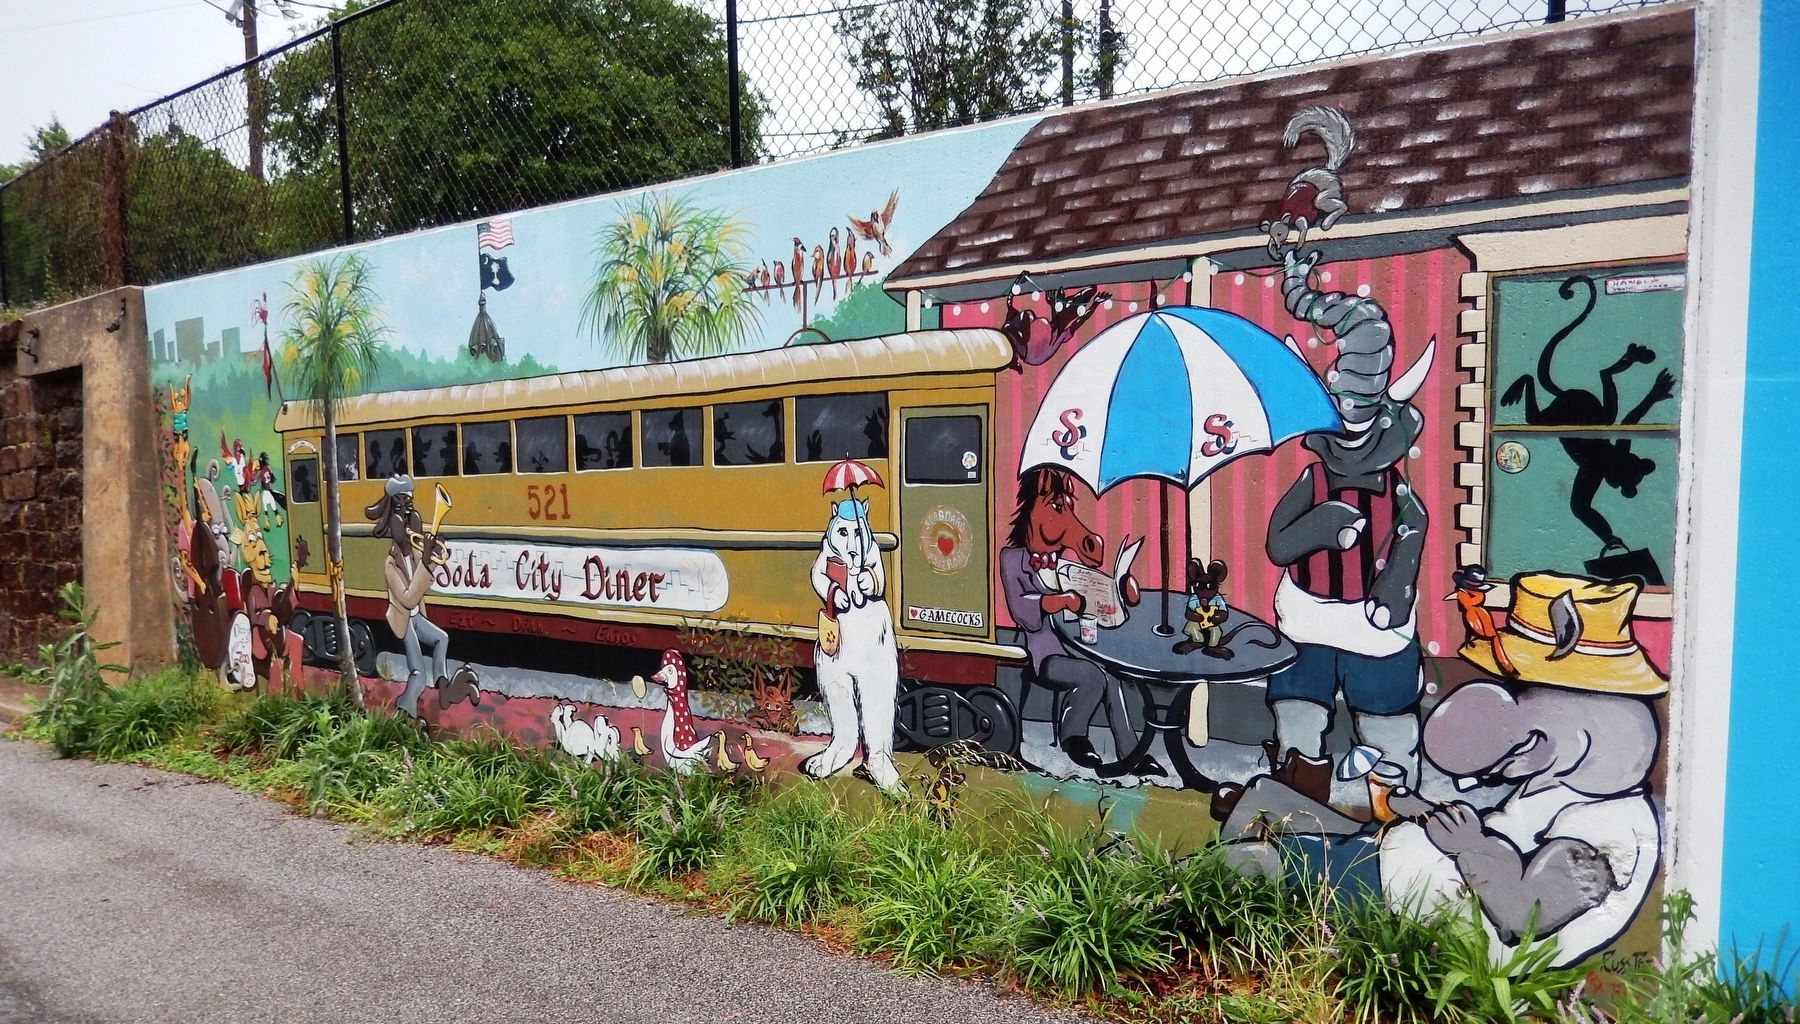 Our Community, Soda City Diner Mural • Keith Tolen • 2017<br>(<i>located near marker</i>) image. Click for full size.